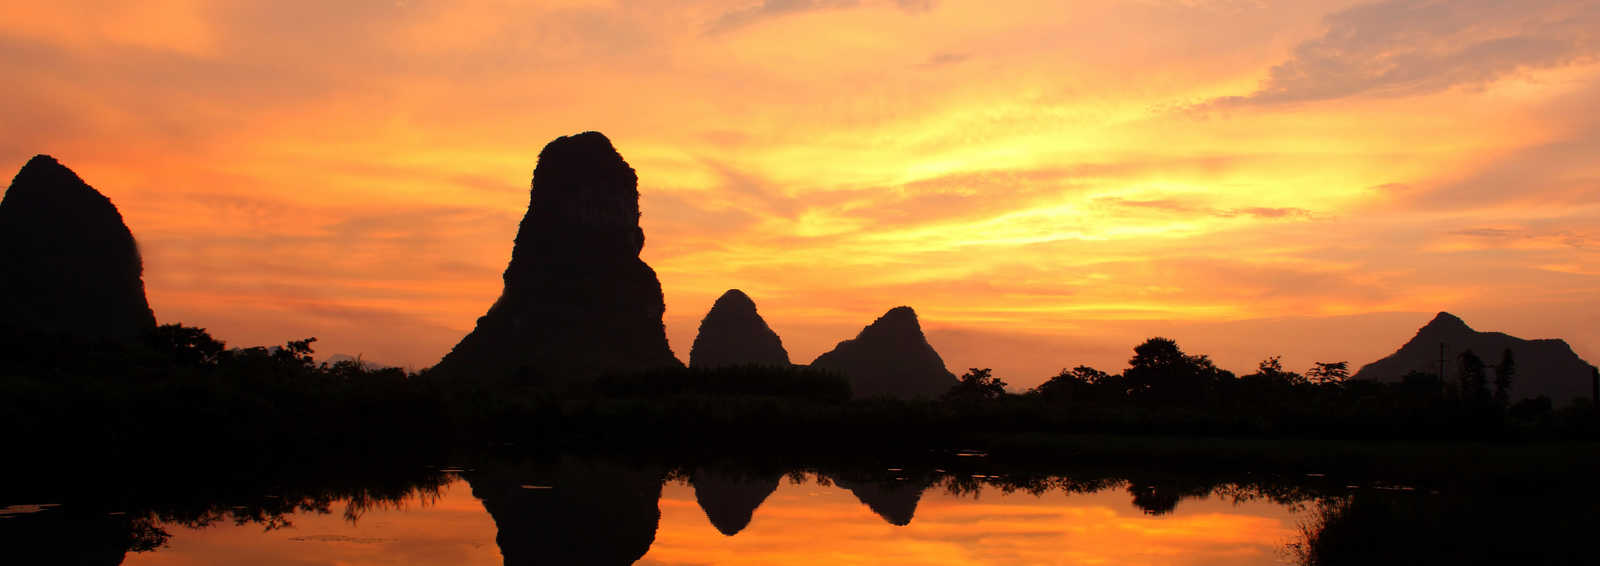 Sunset Guilin,China